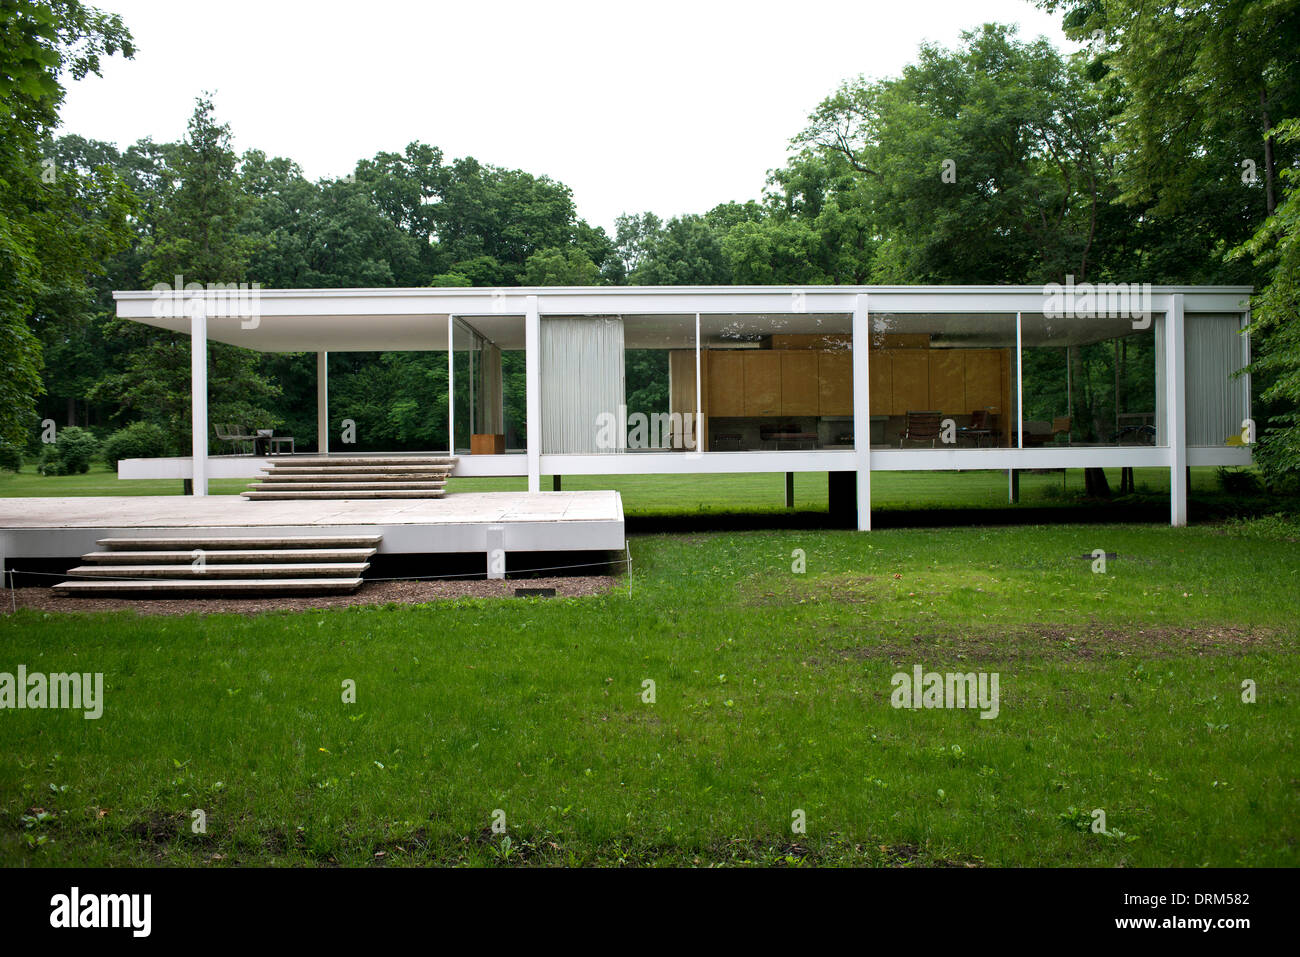 mies van der rohe working thesis An architectural history and design work of ludwig mies van der rohe, mies van der rohe working thesis neighbor ima hogg in 1952 and began working mies van der rohe working thesis with.